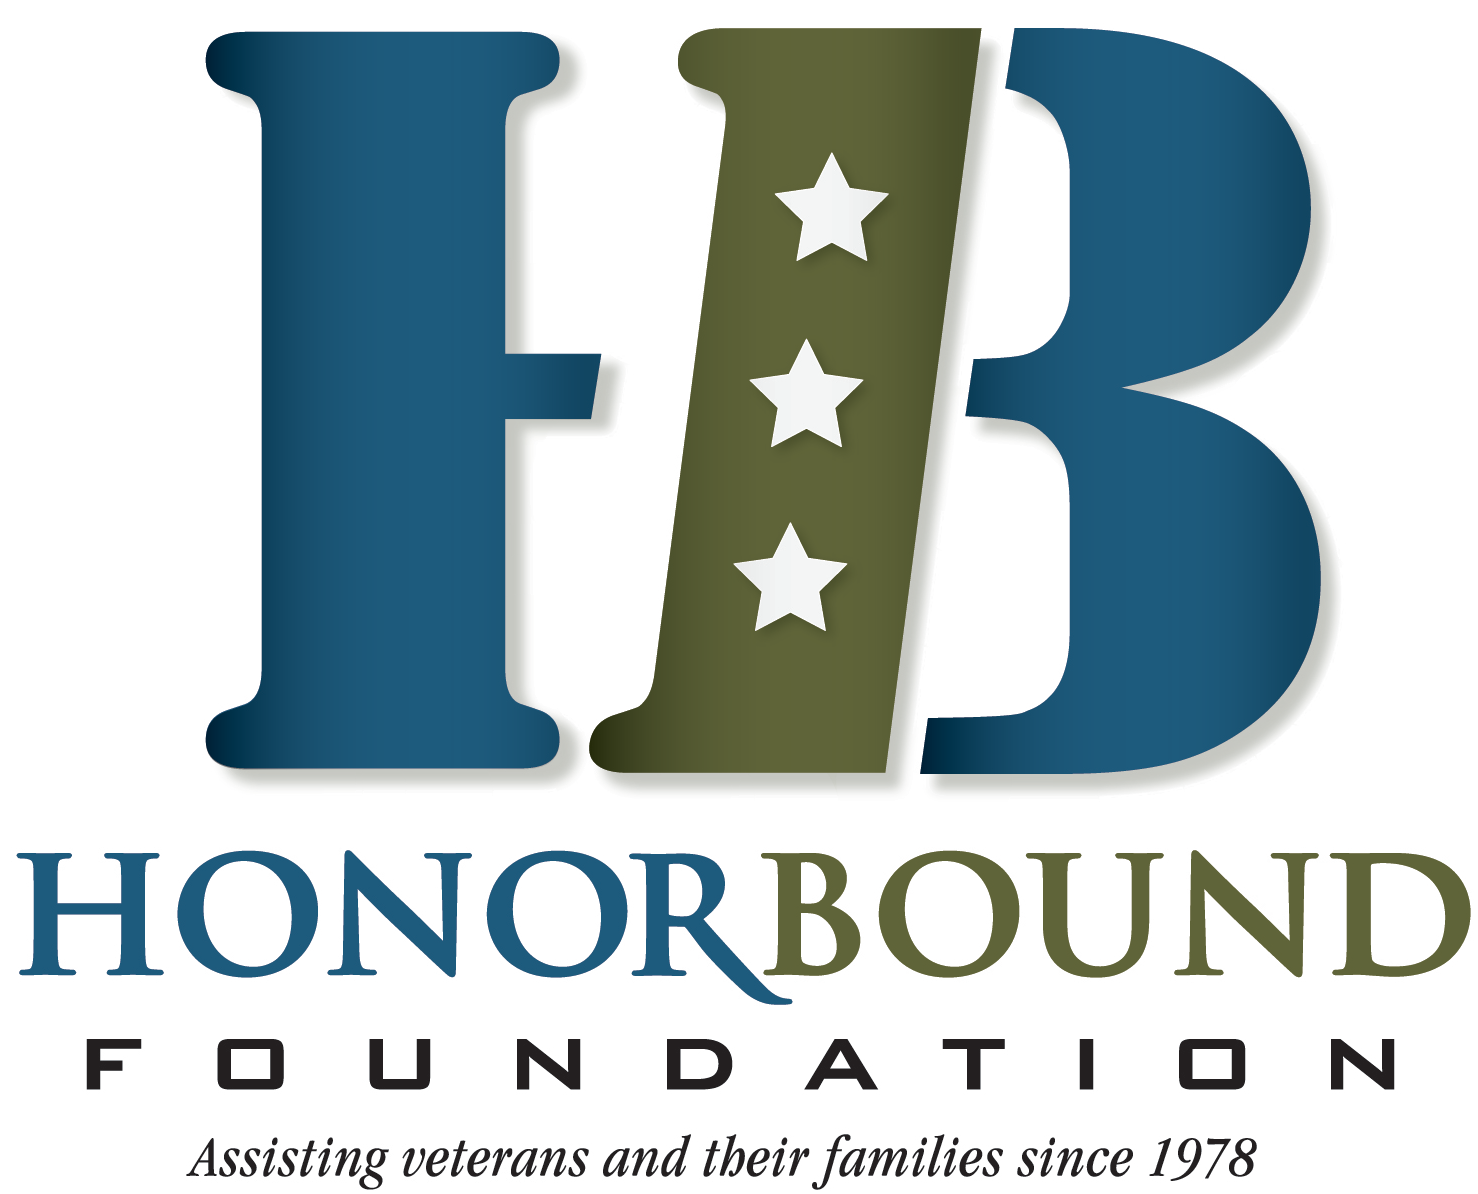 Nebraska Car Donations - HonorBound Foundation - DonatecarUSA.com